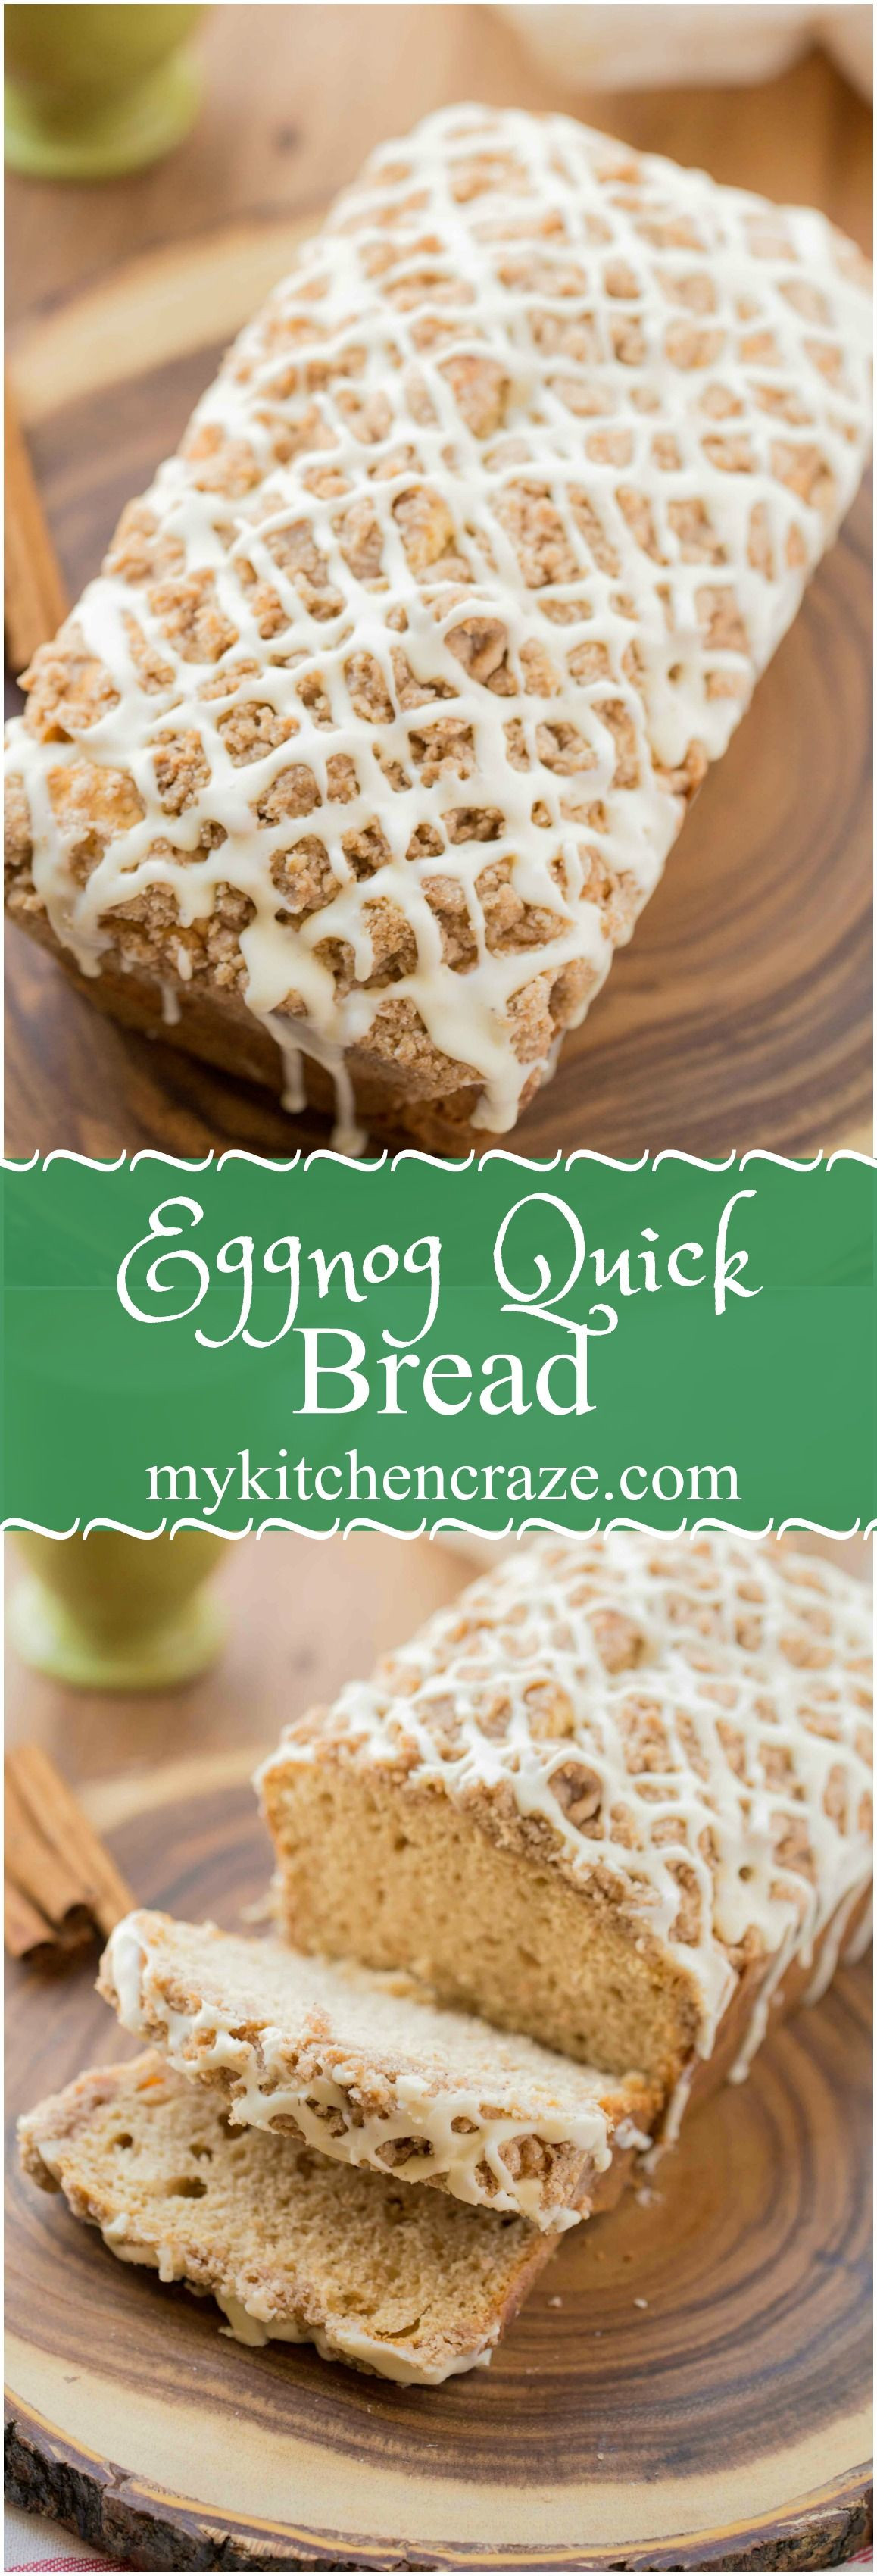 Christmas Quick Bread Recipes  Eggnog Quick Bread should be on your holiday baking list